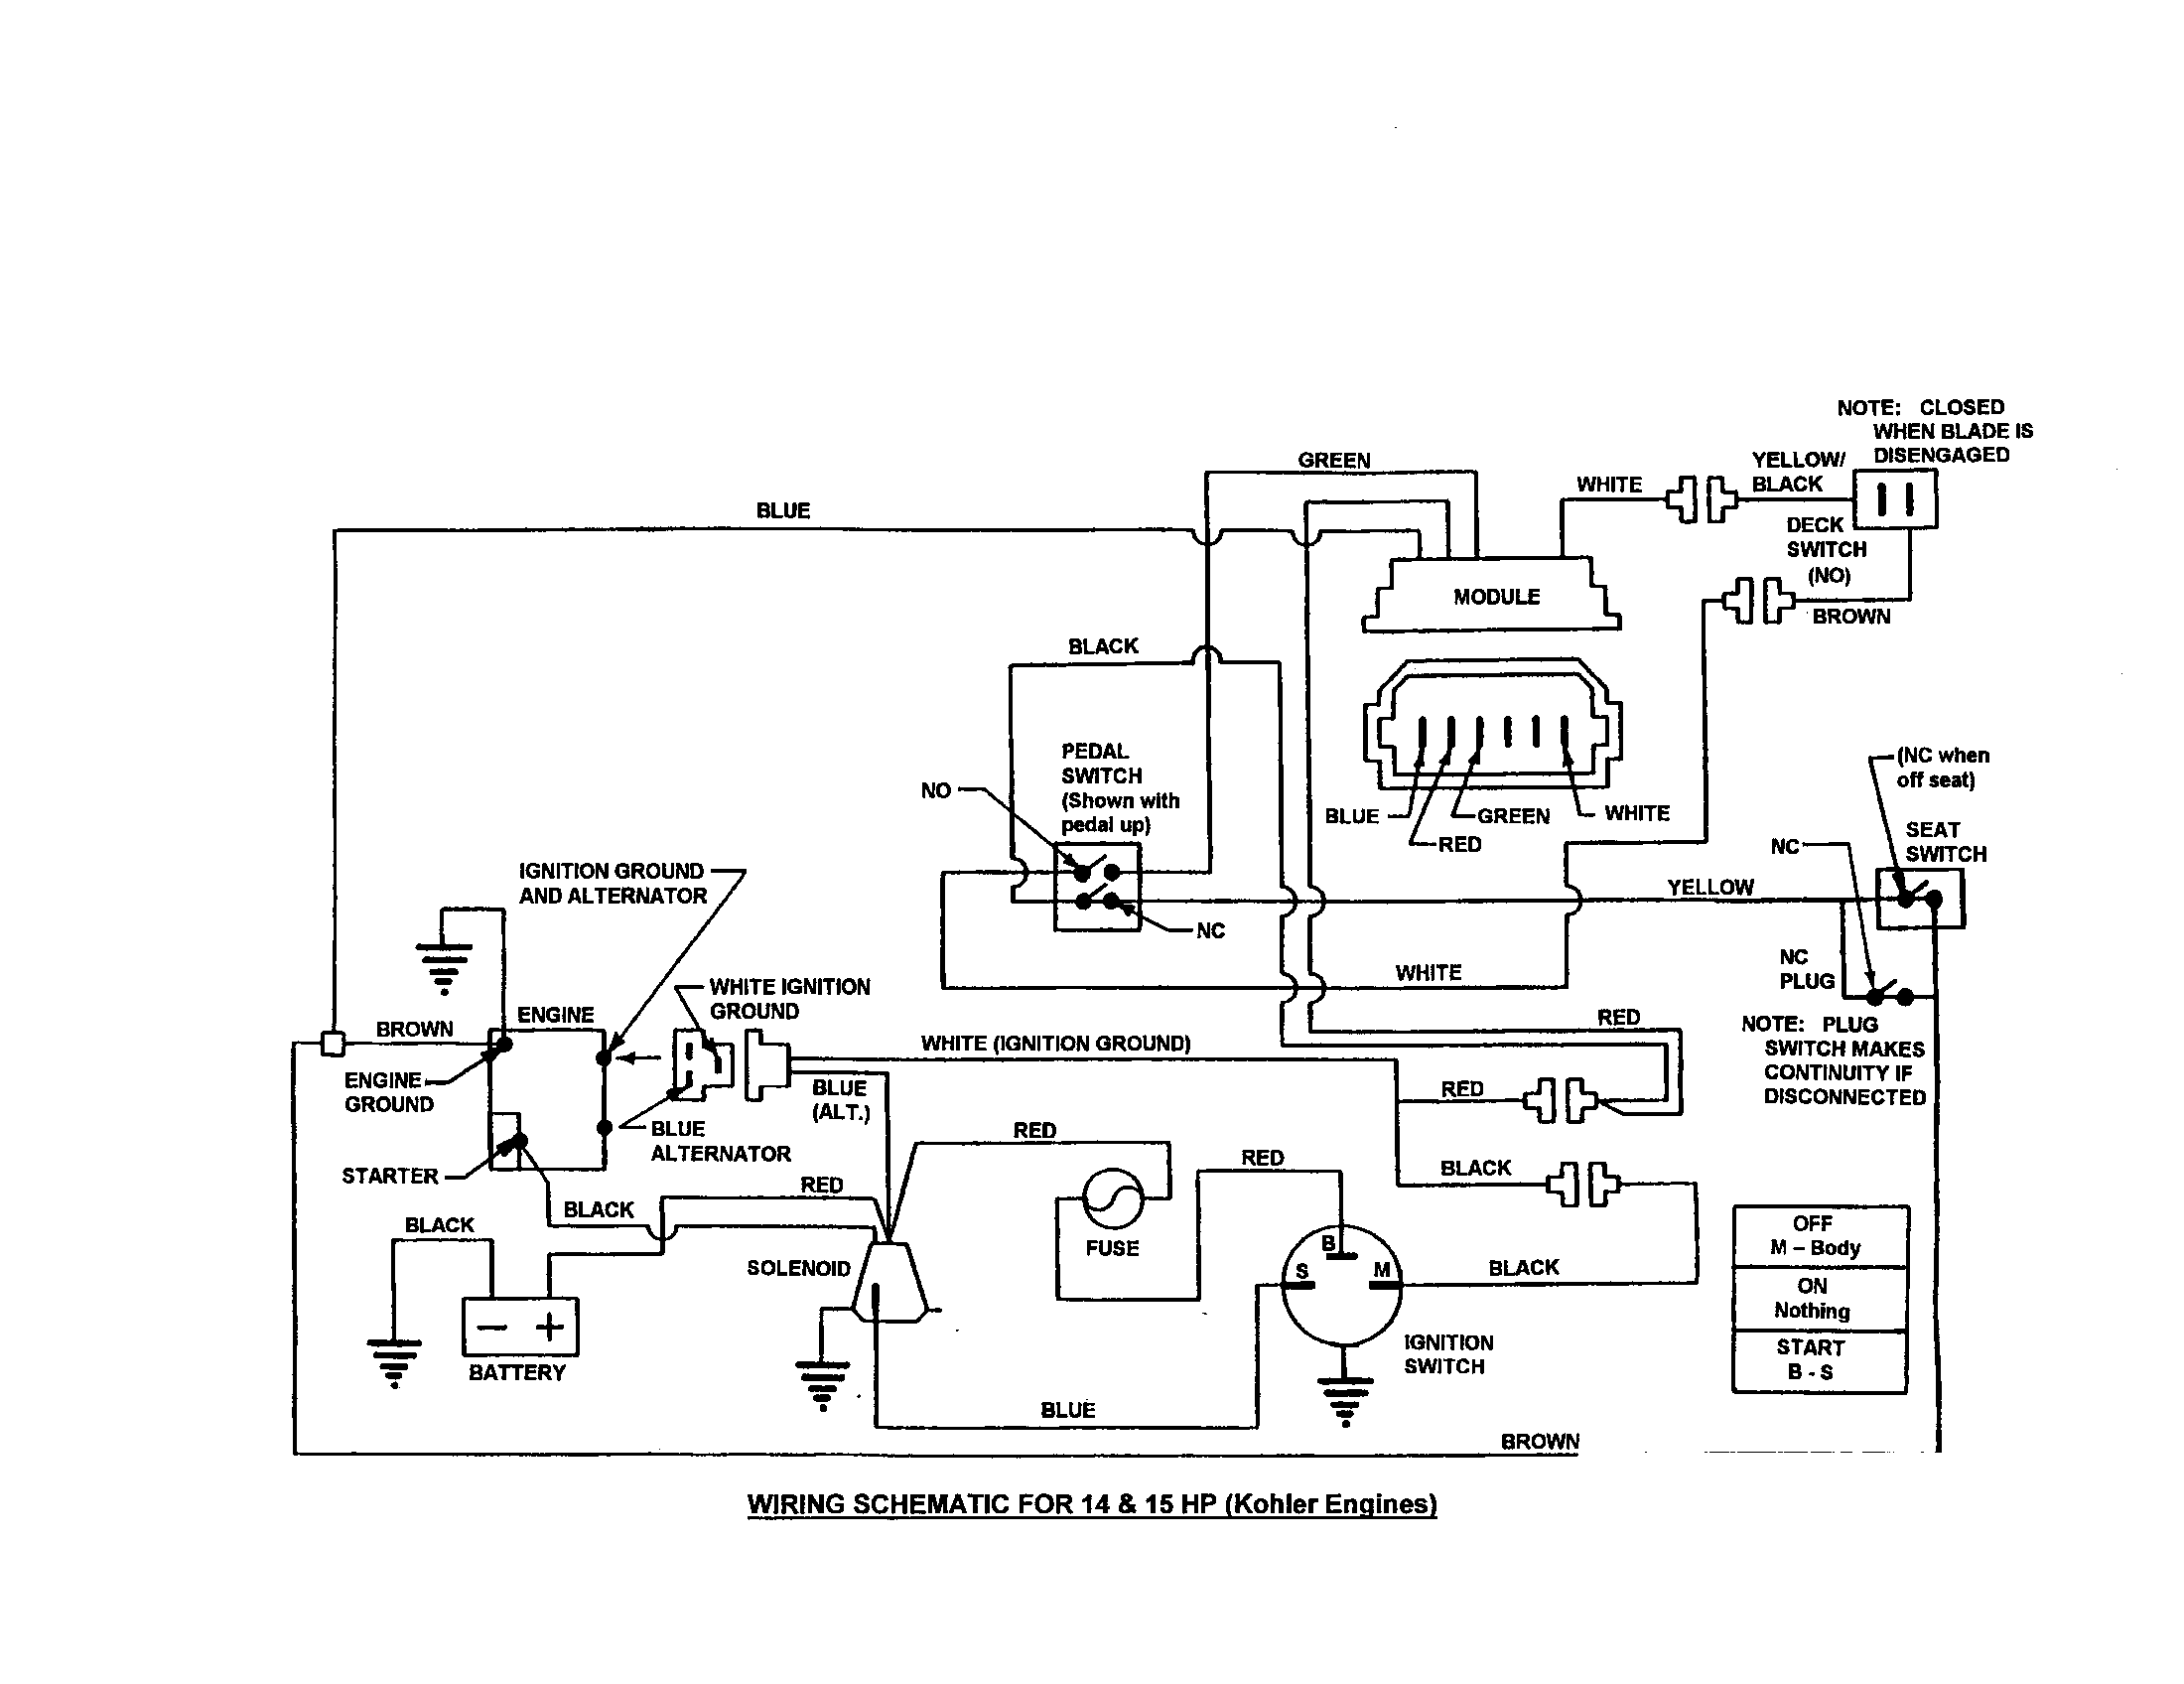 Kohler Engines K Series Wiring Diagram, Kohler, Free